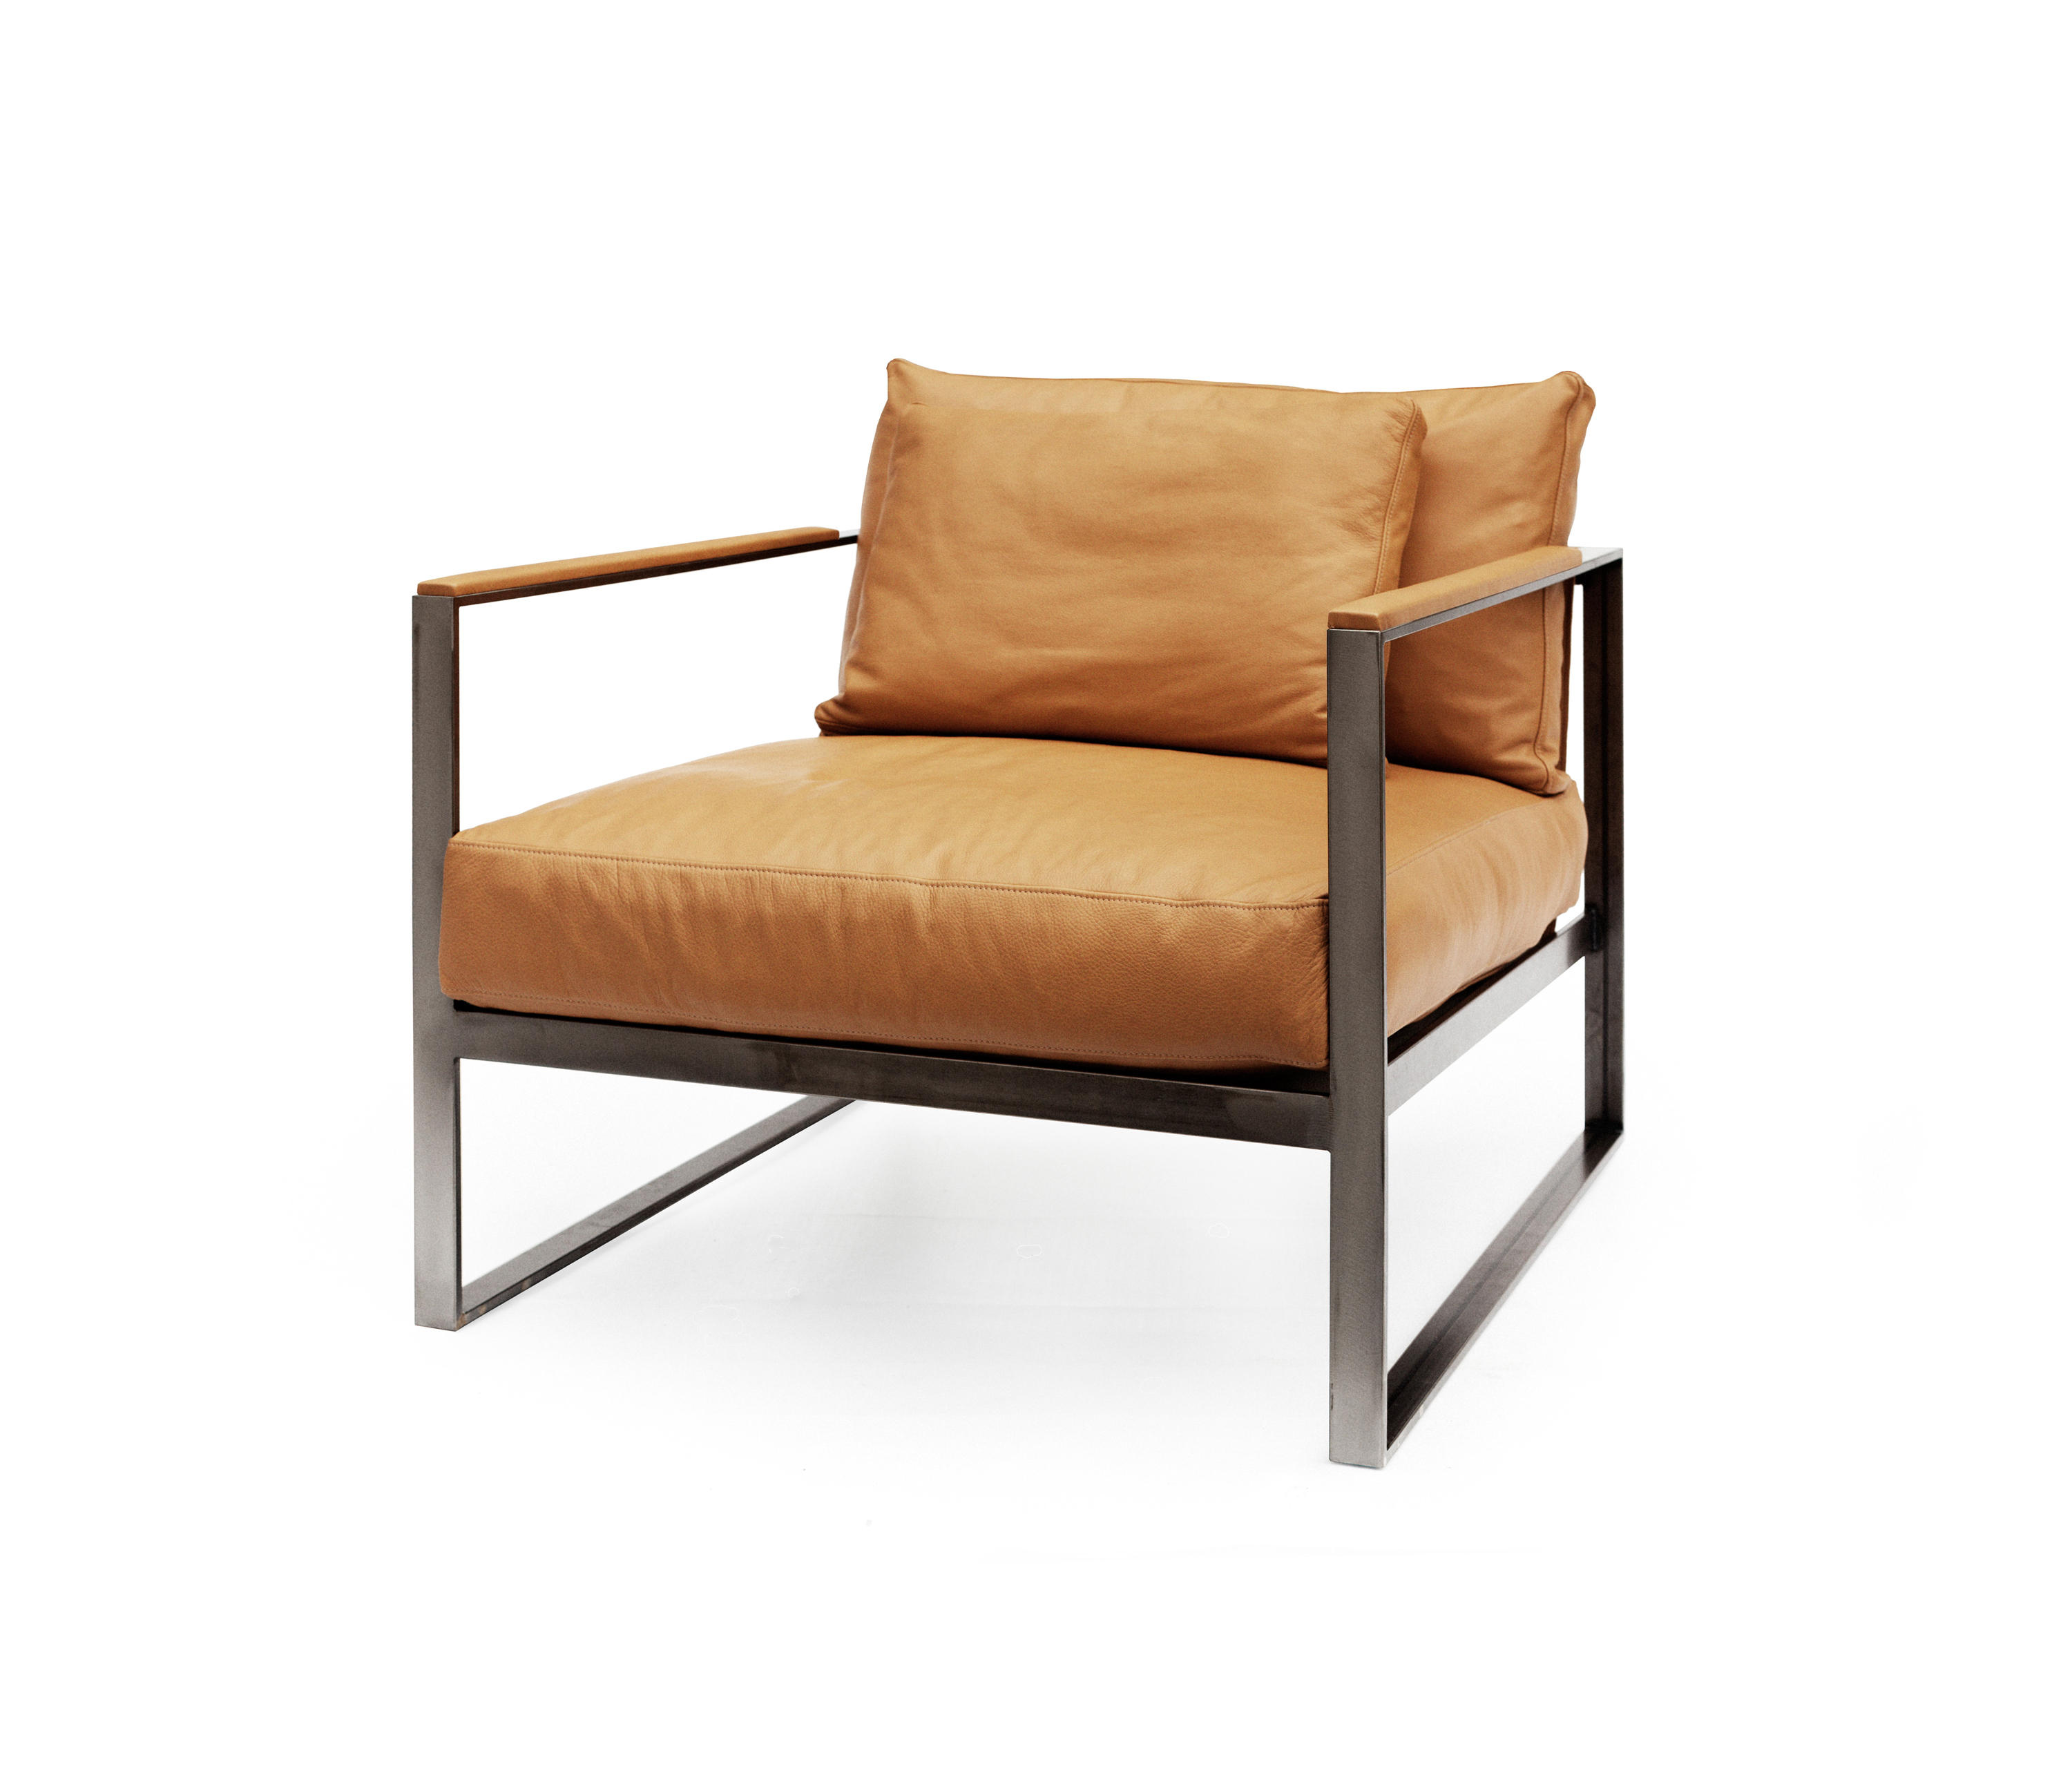 monaco lounge chair by röshults  lounge chairs . monaco lounge chair  lounge chairs from röshults  architonic